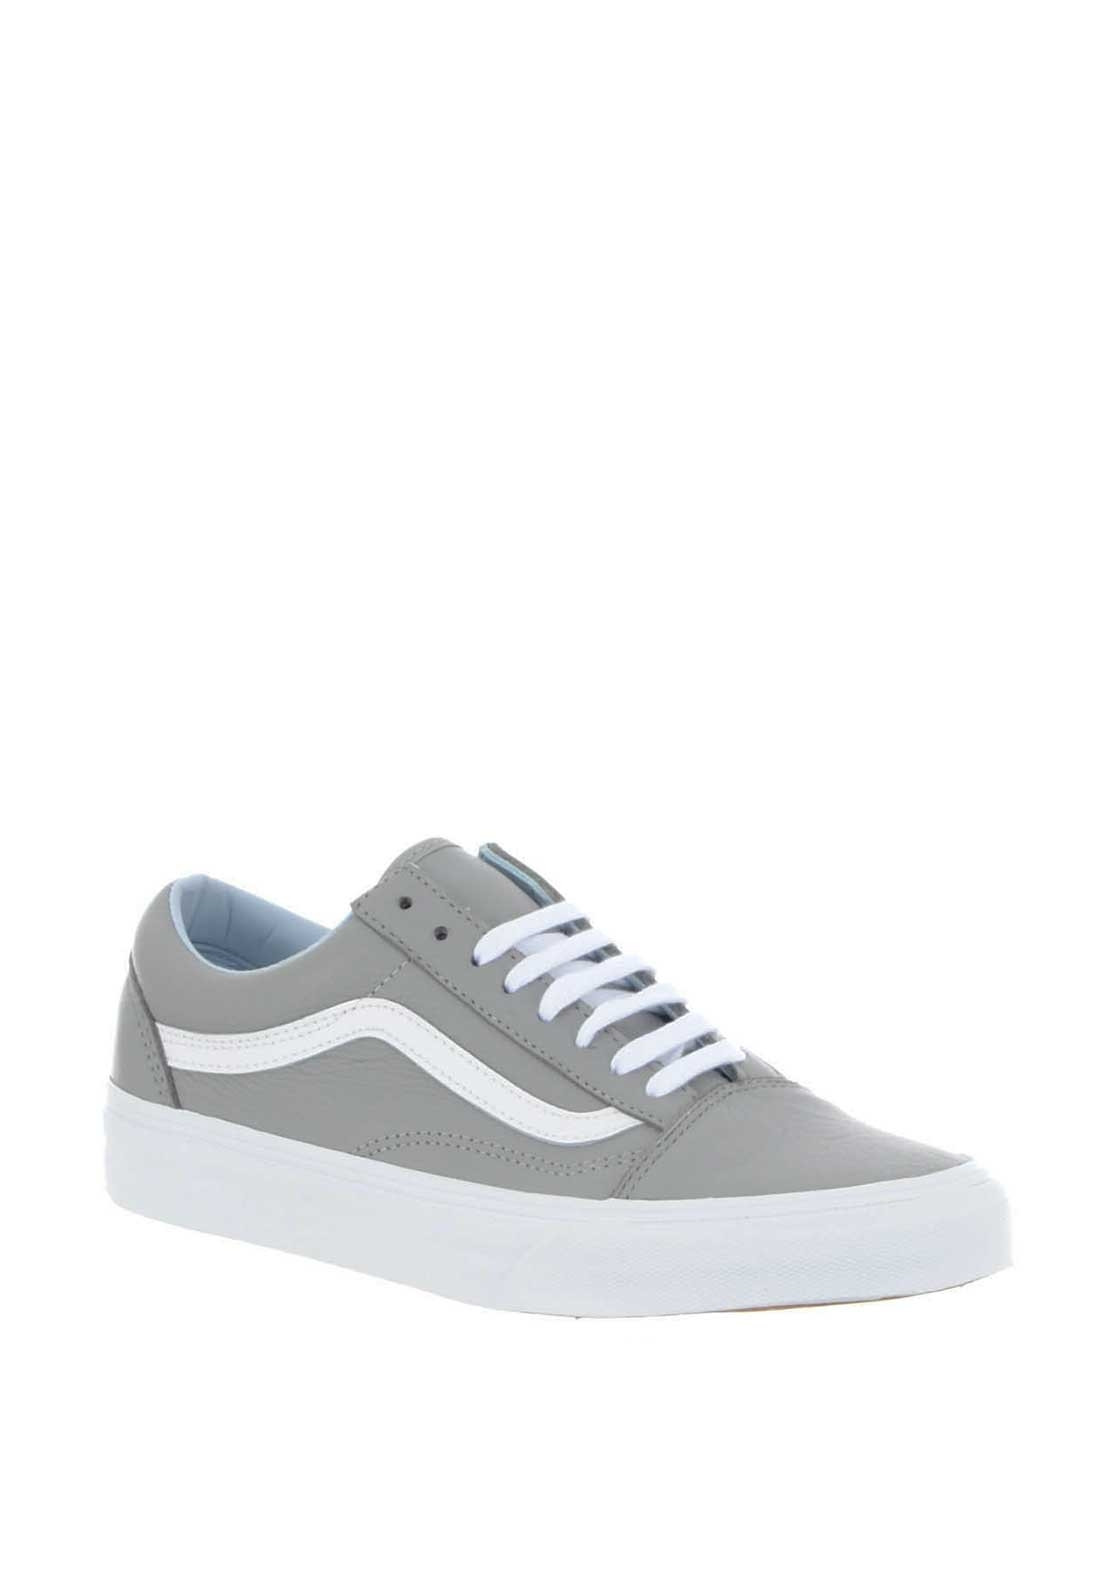 0f21385dd78aa Vans Womens Old Skool Leather Trainers, Grey. Be the first to review this  product